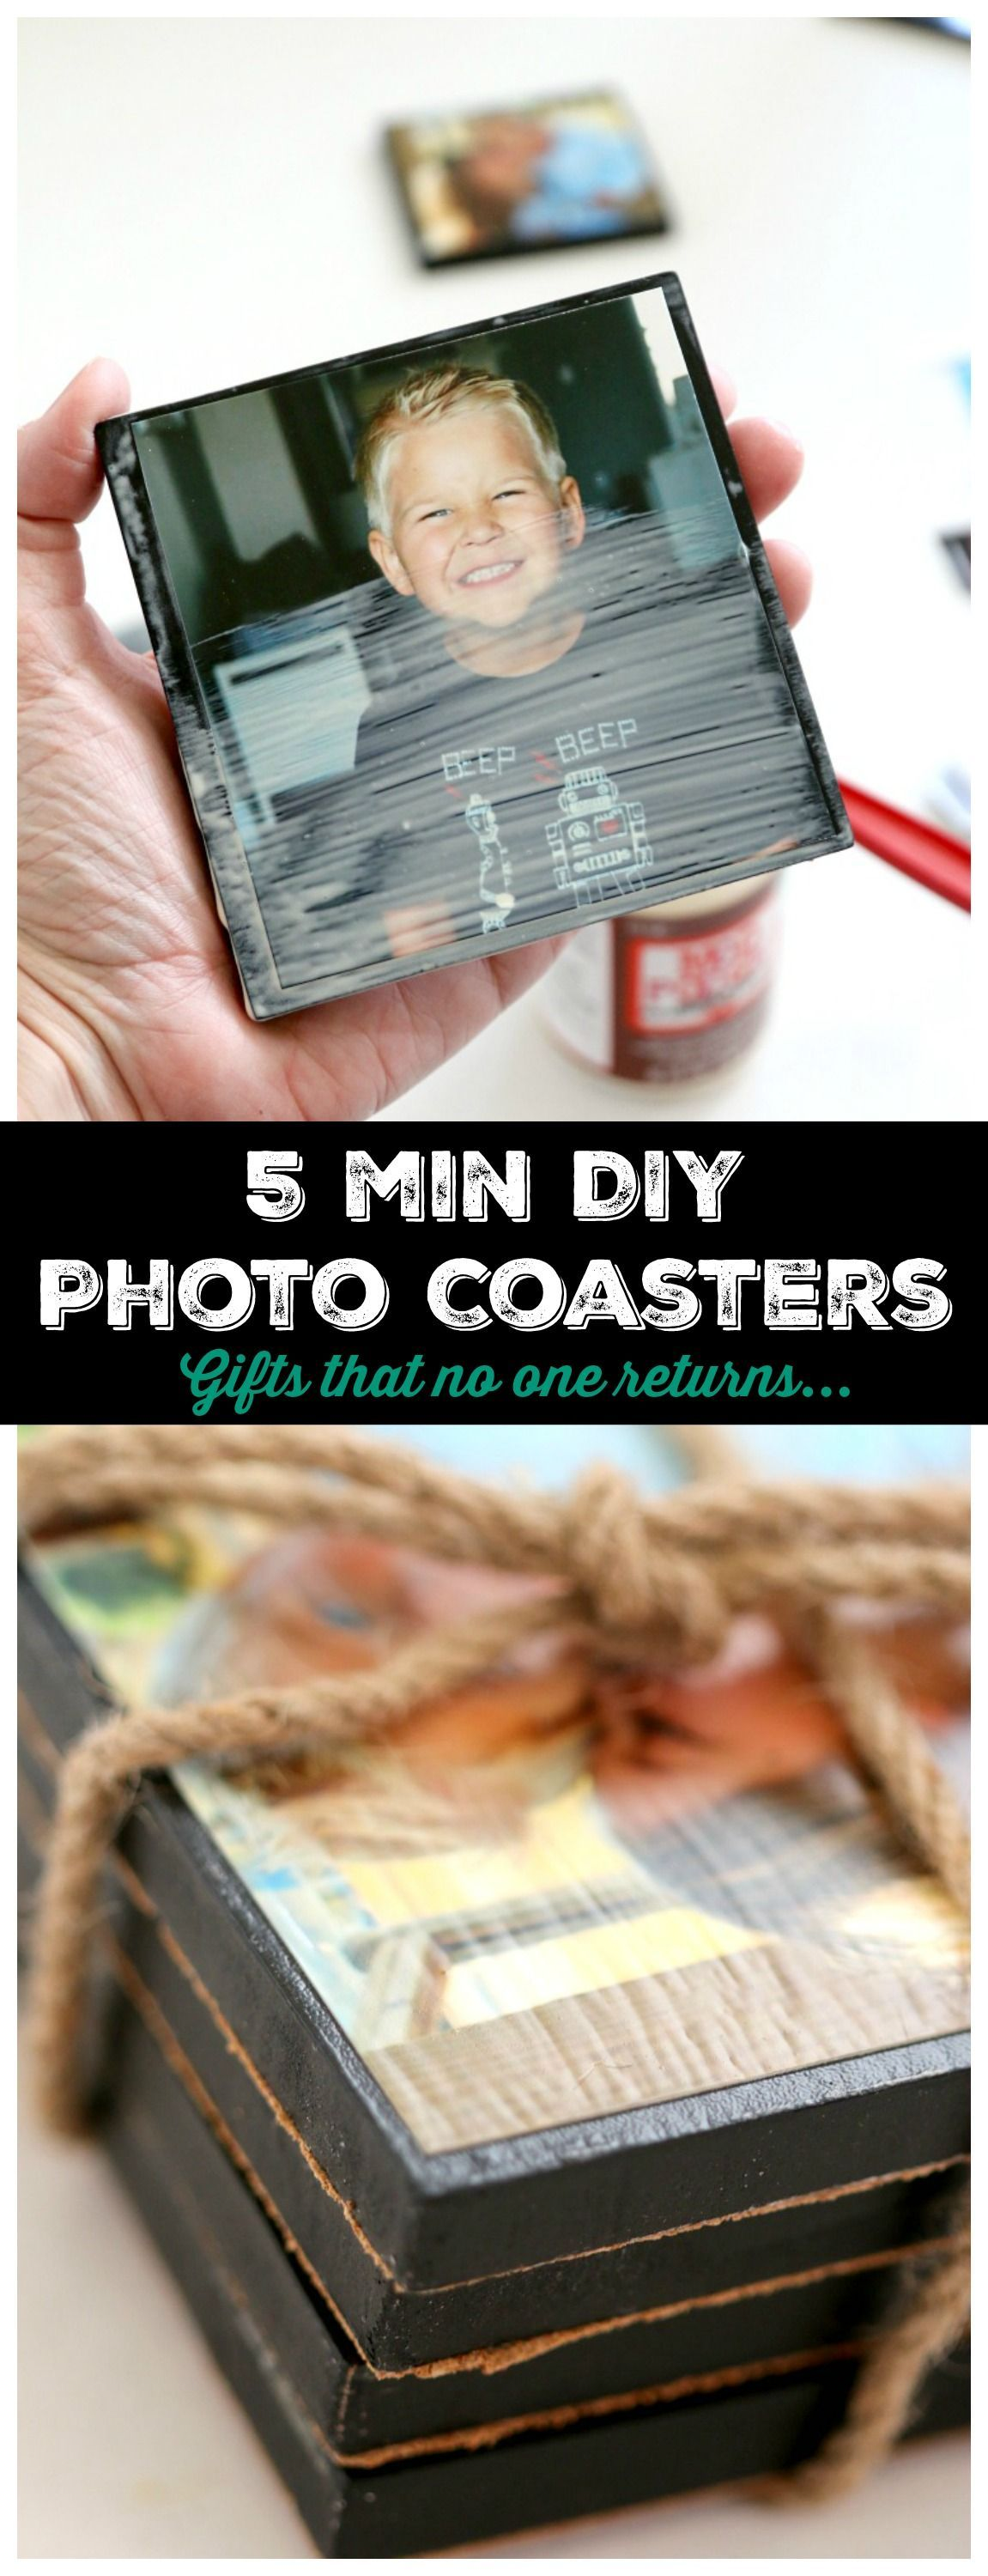 minute DIY Photo Coasters - DIY Photo Coasters : 5 minutes of Crafting for a gift that never gets returned, tell them you love them with photographsDIY Photo Coasters : 5 minutes of Crafting for a gift that never gets returned, tell them you love them with photographs